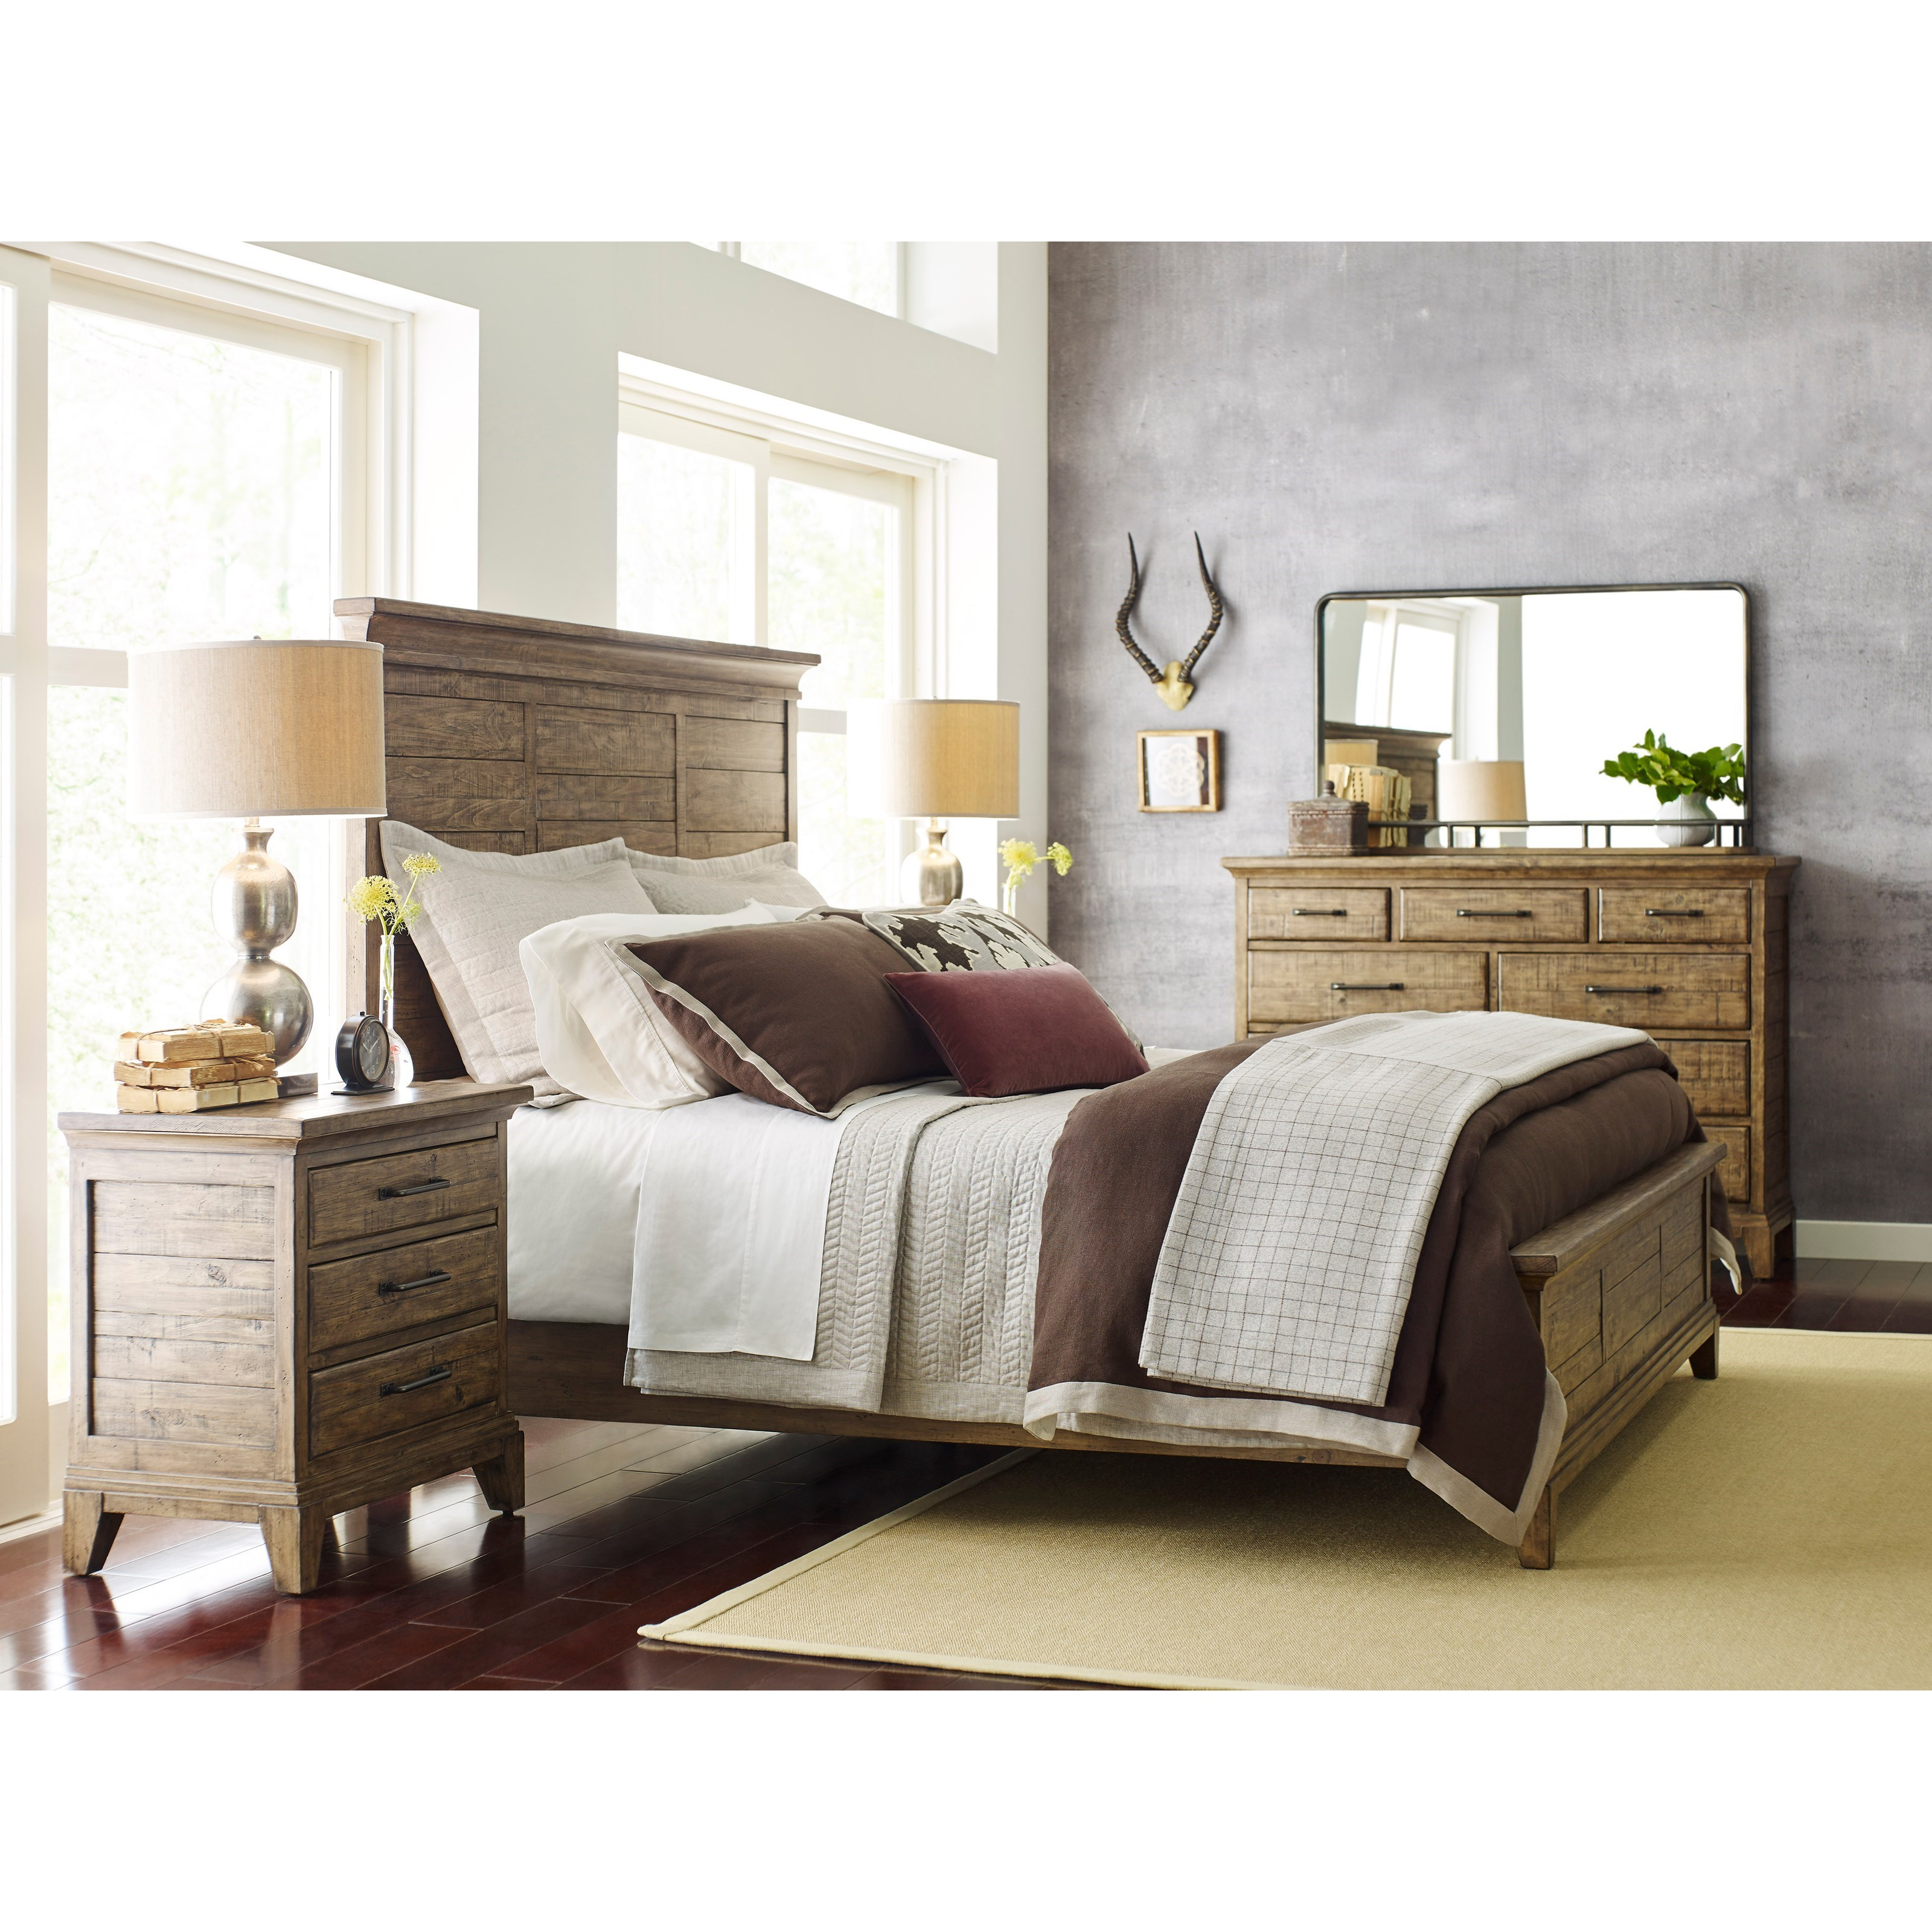 Plank Road California King Bedroom Group by Kincaid Furniture at Johnny Janosik